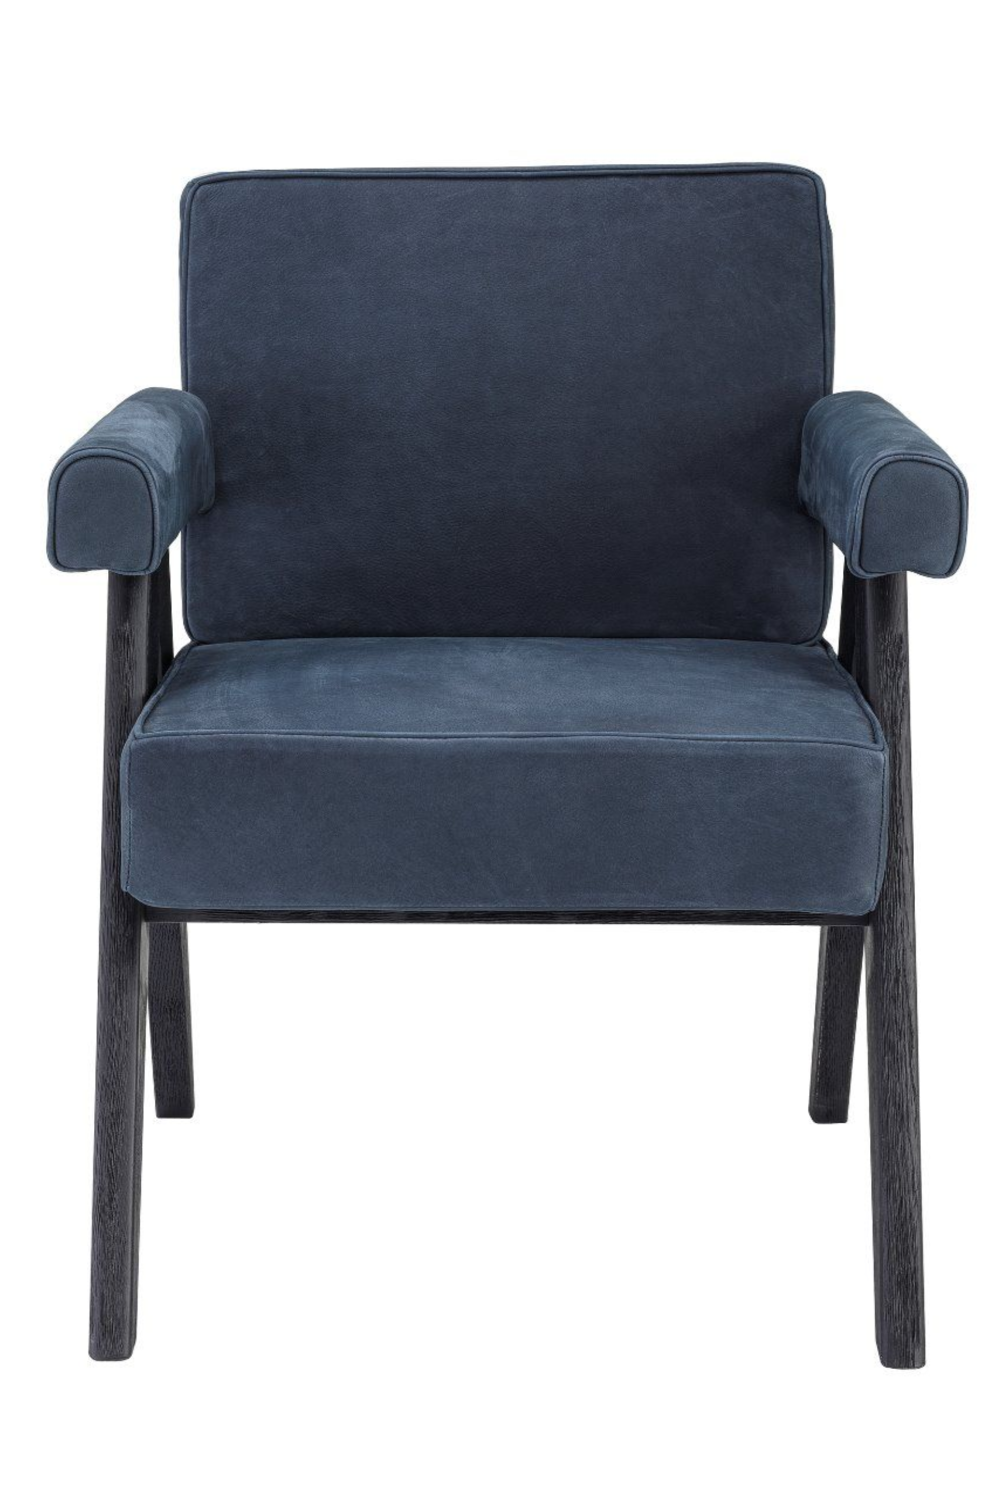 Blue Wooden Leg Dining Armchair | Eichholtz Matteus | Woodfurniture.com